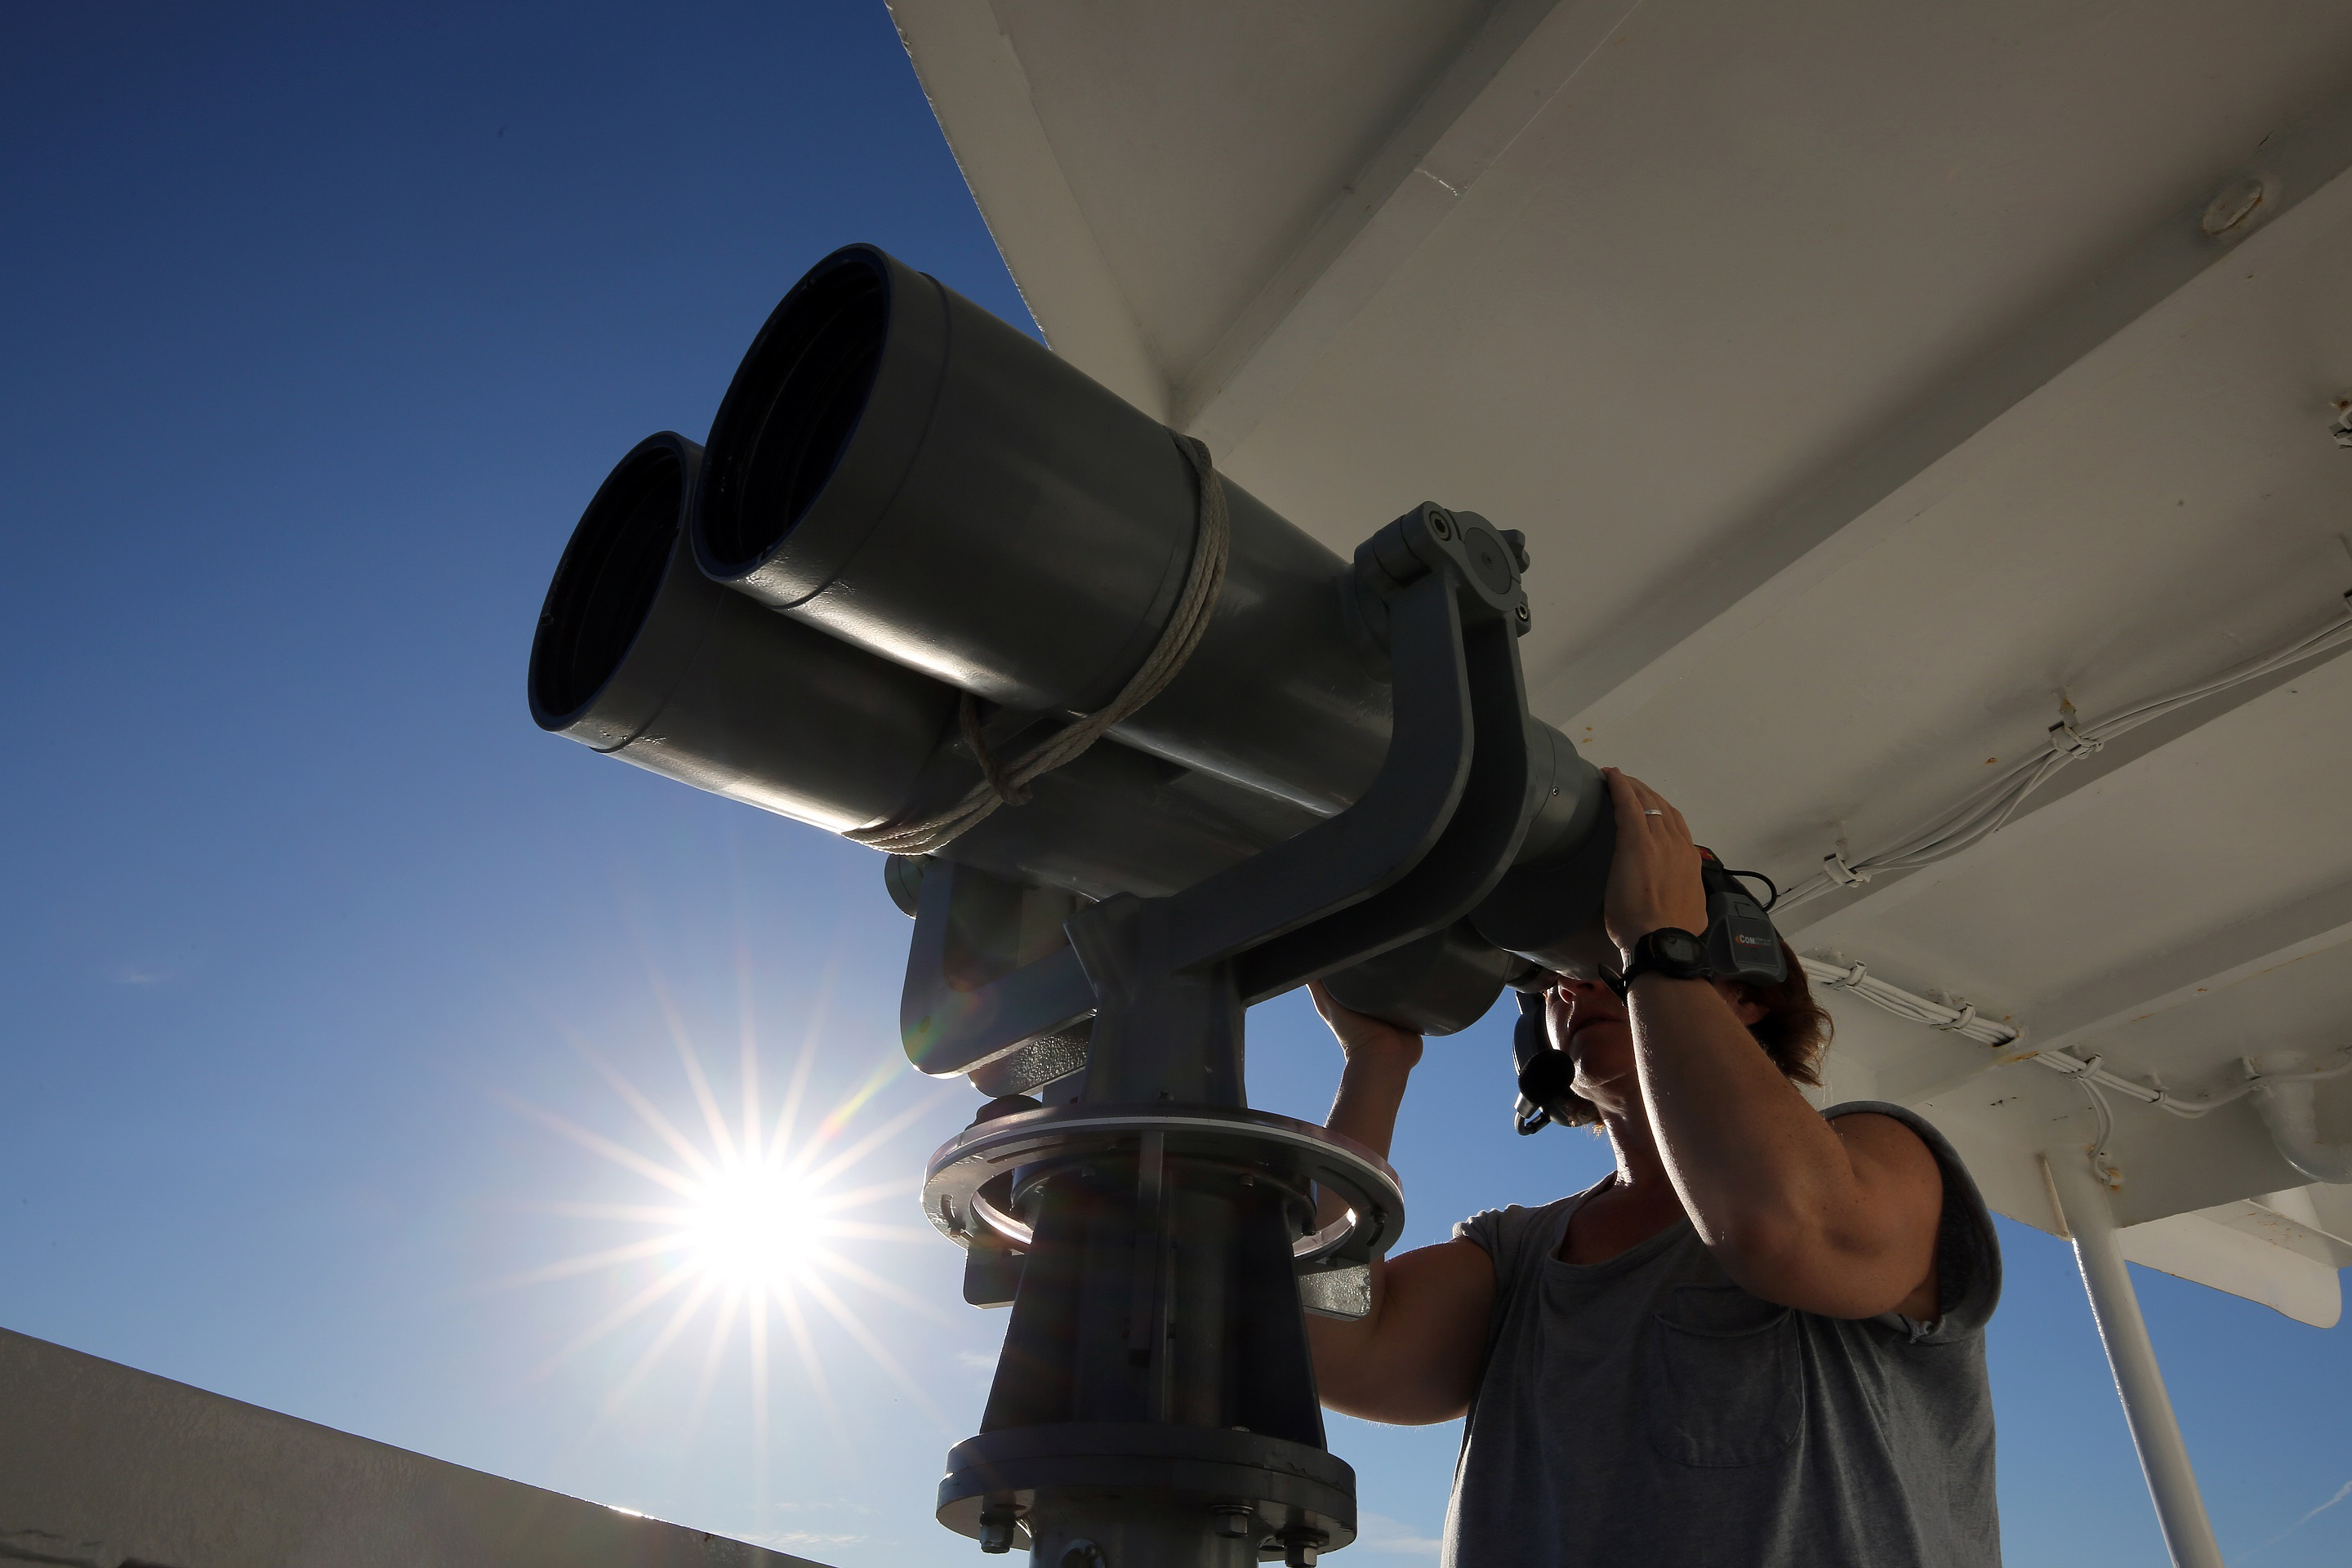 NOAA scientist looks through giant binoculars on a ship, looking for marine mammals.